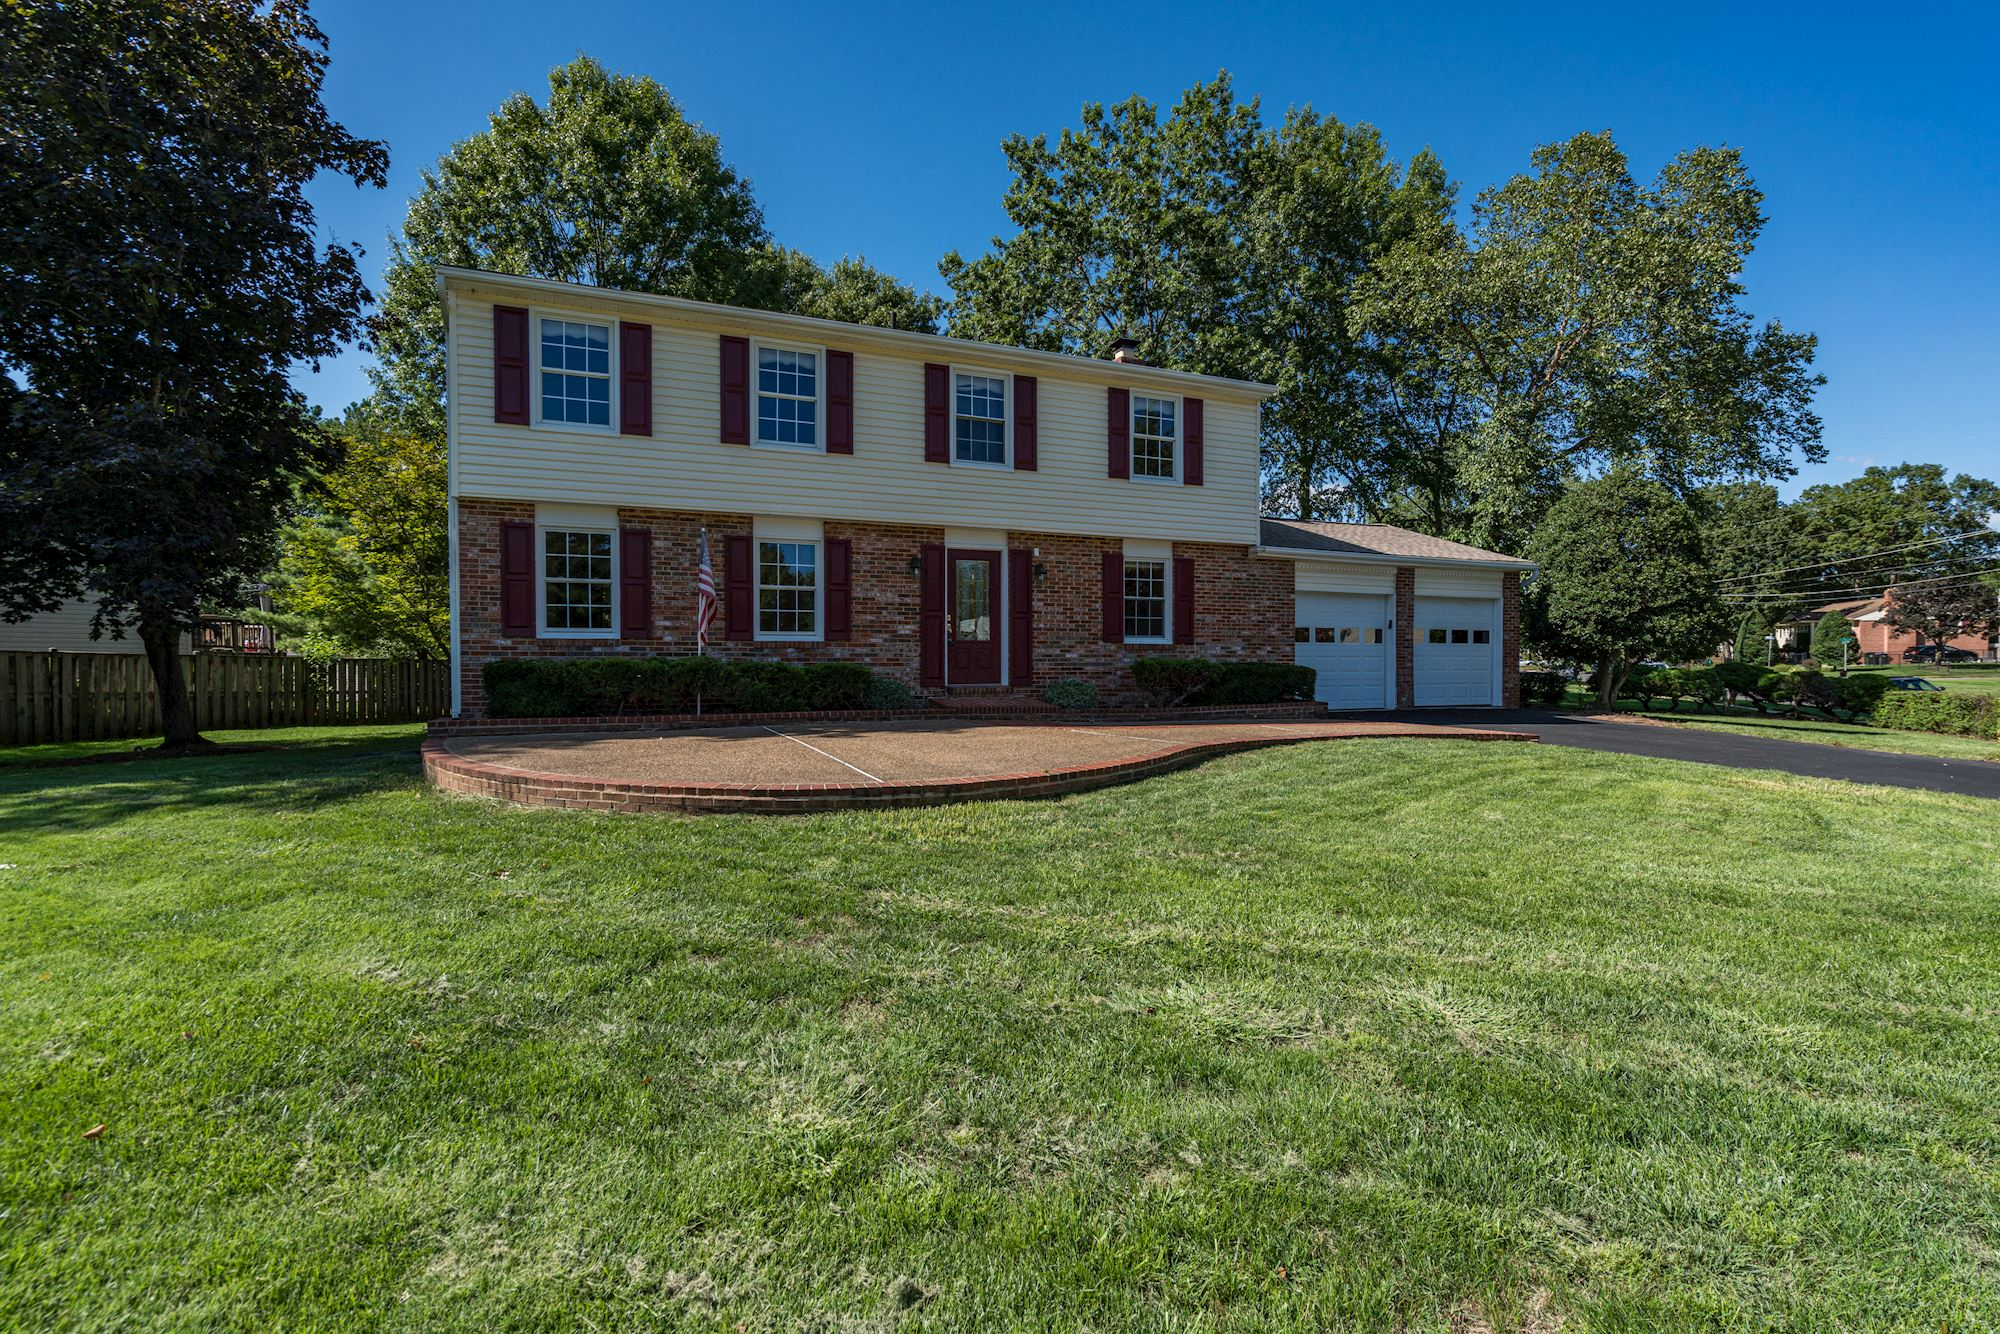 NEW LISTING: Beautifully Upgraded 4 BD in Centreville, VA